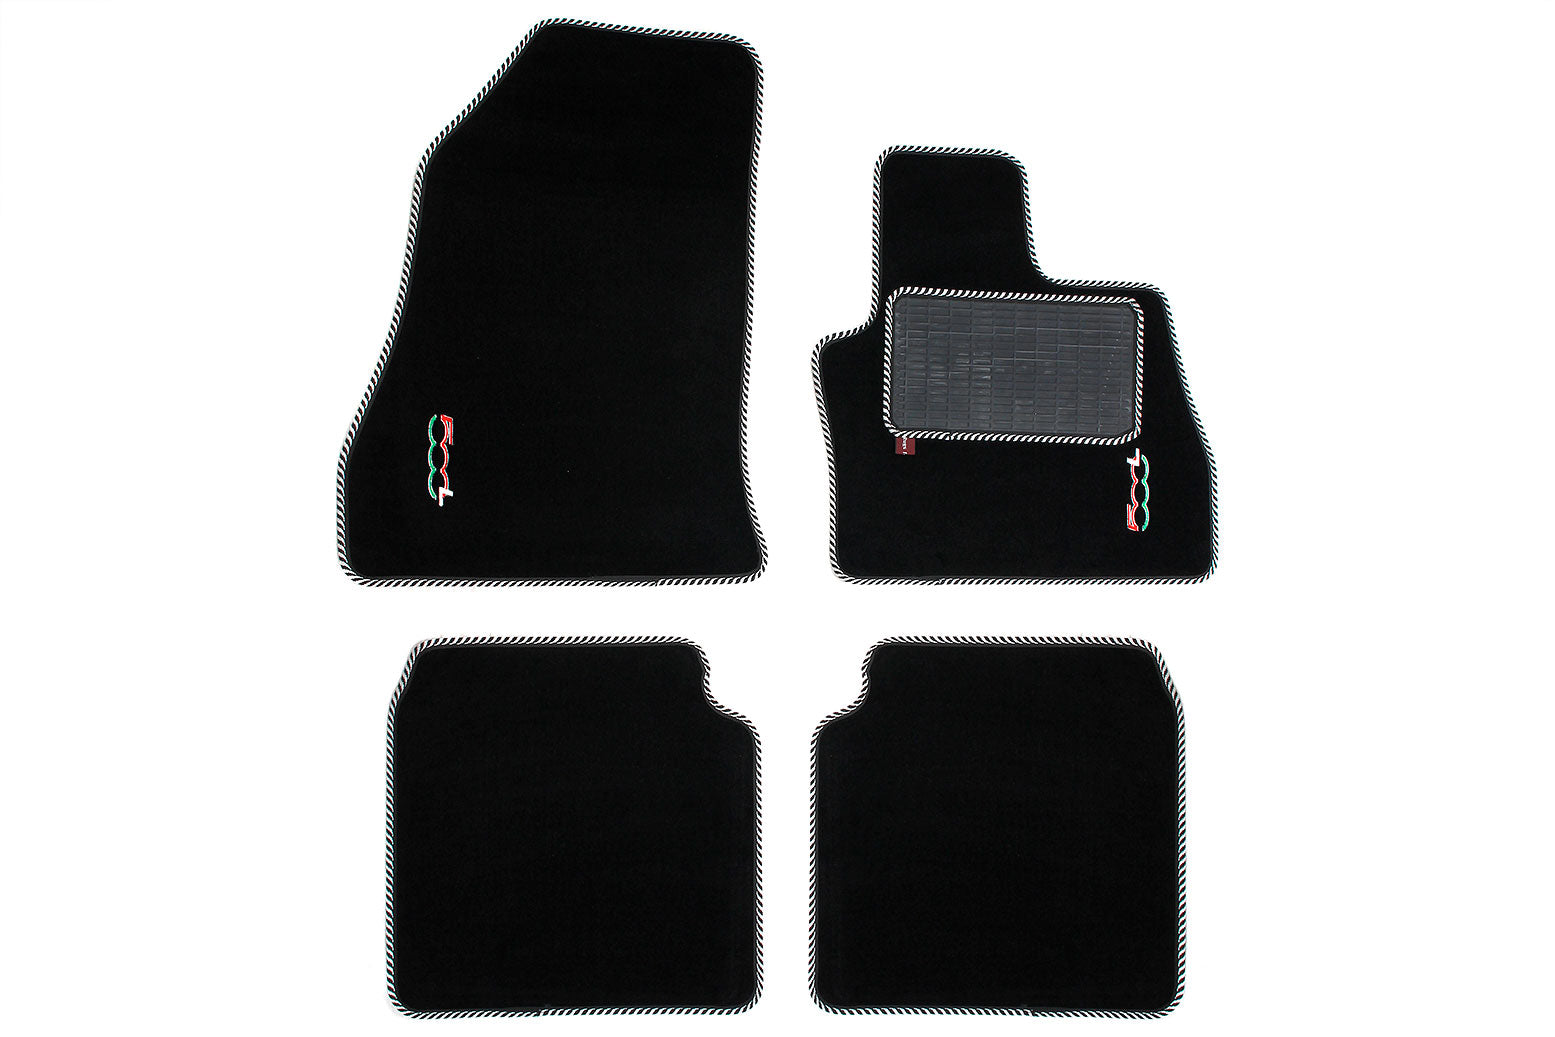 Fiat 500L - Over mat set with Fiat 500L logo